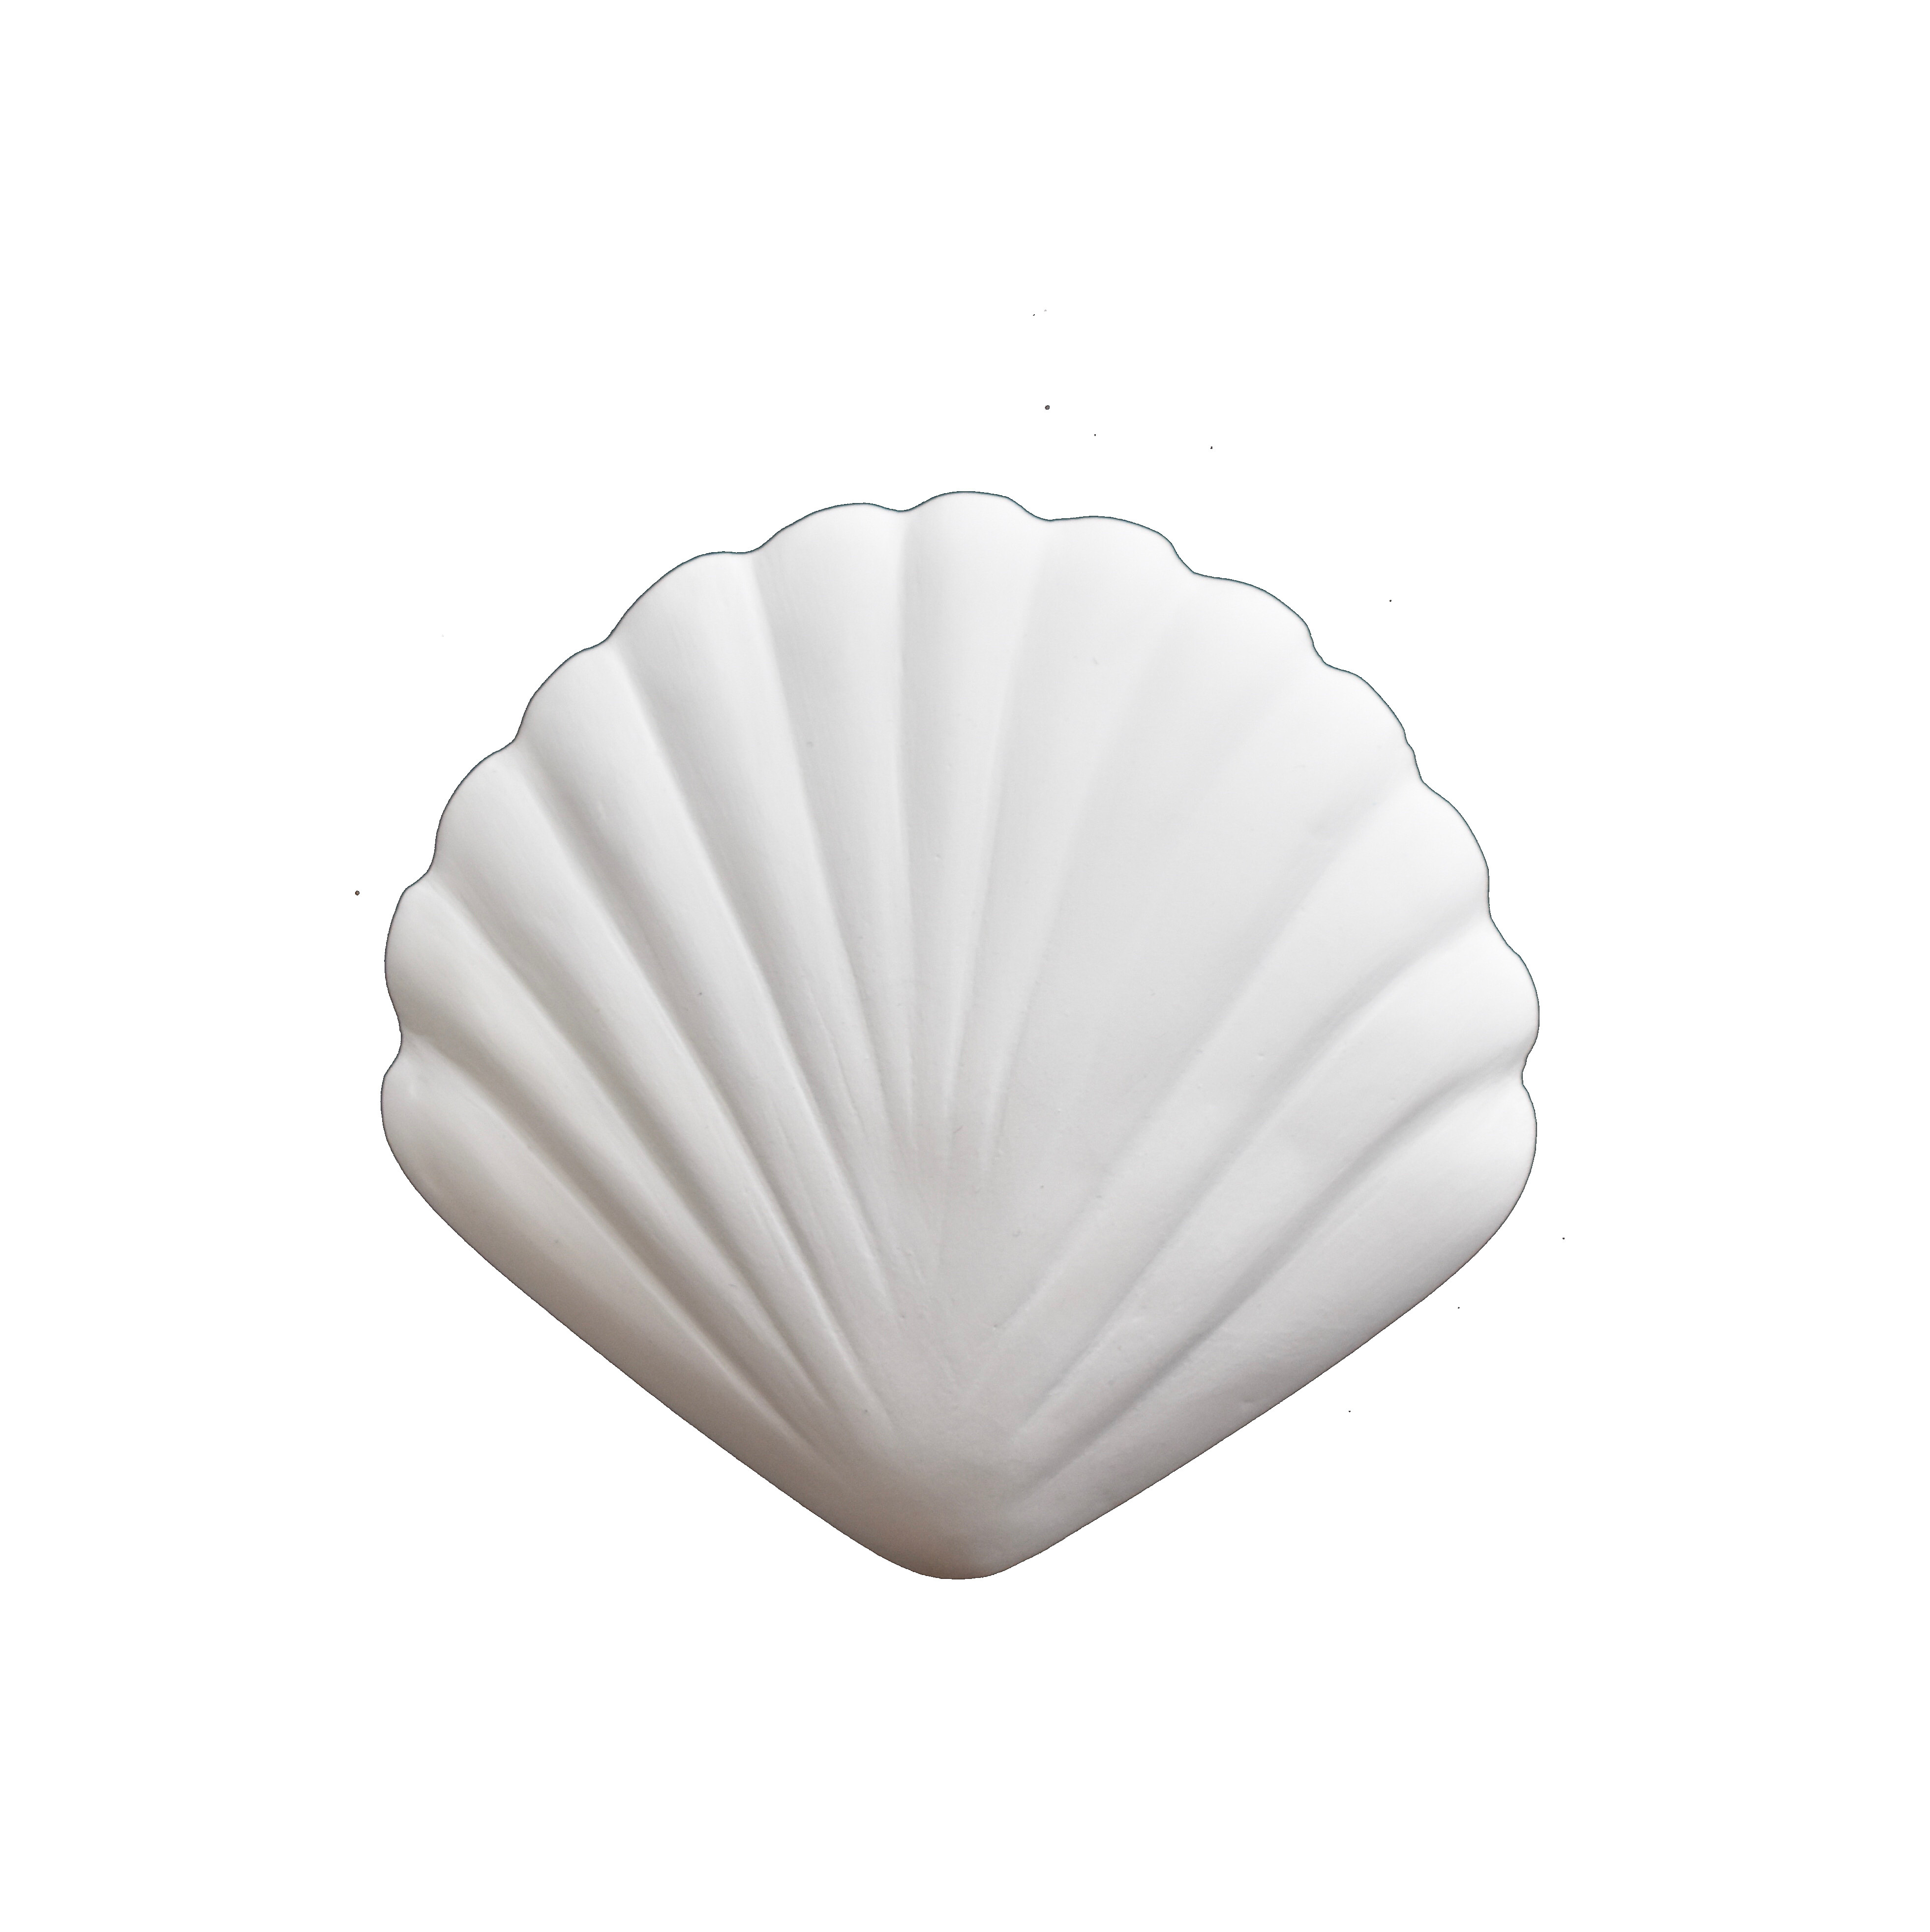 Summer Shells - Small Clam by My Kind of Bliss, a Wall Hangings & Decor for sale on Style Sourcebook